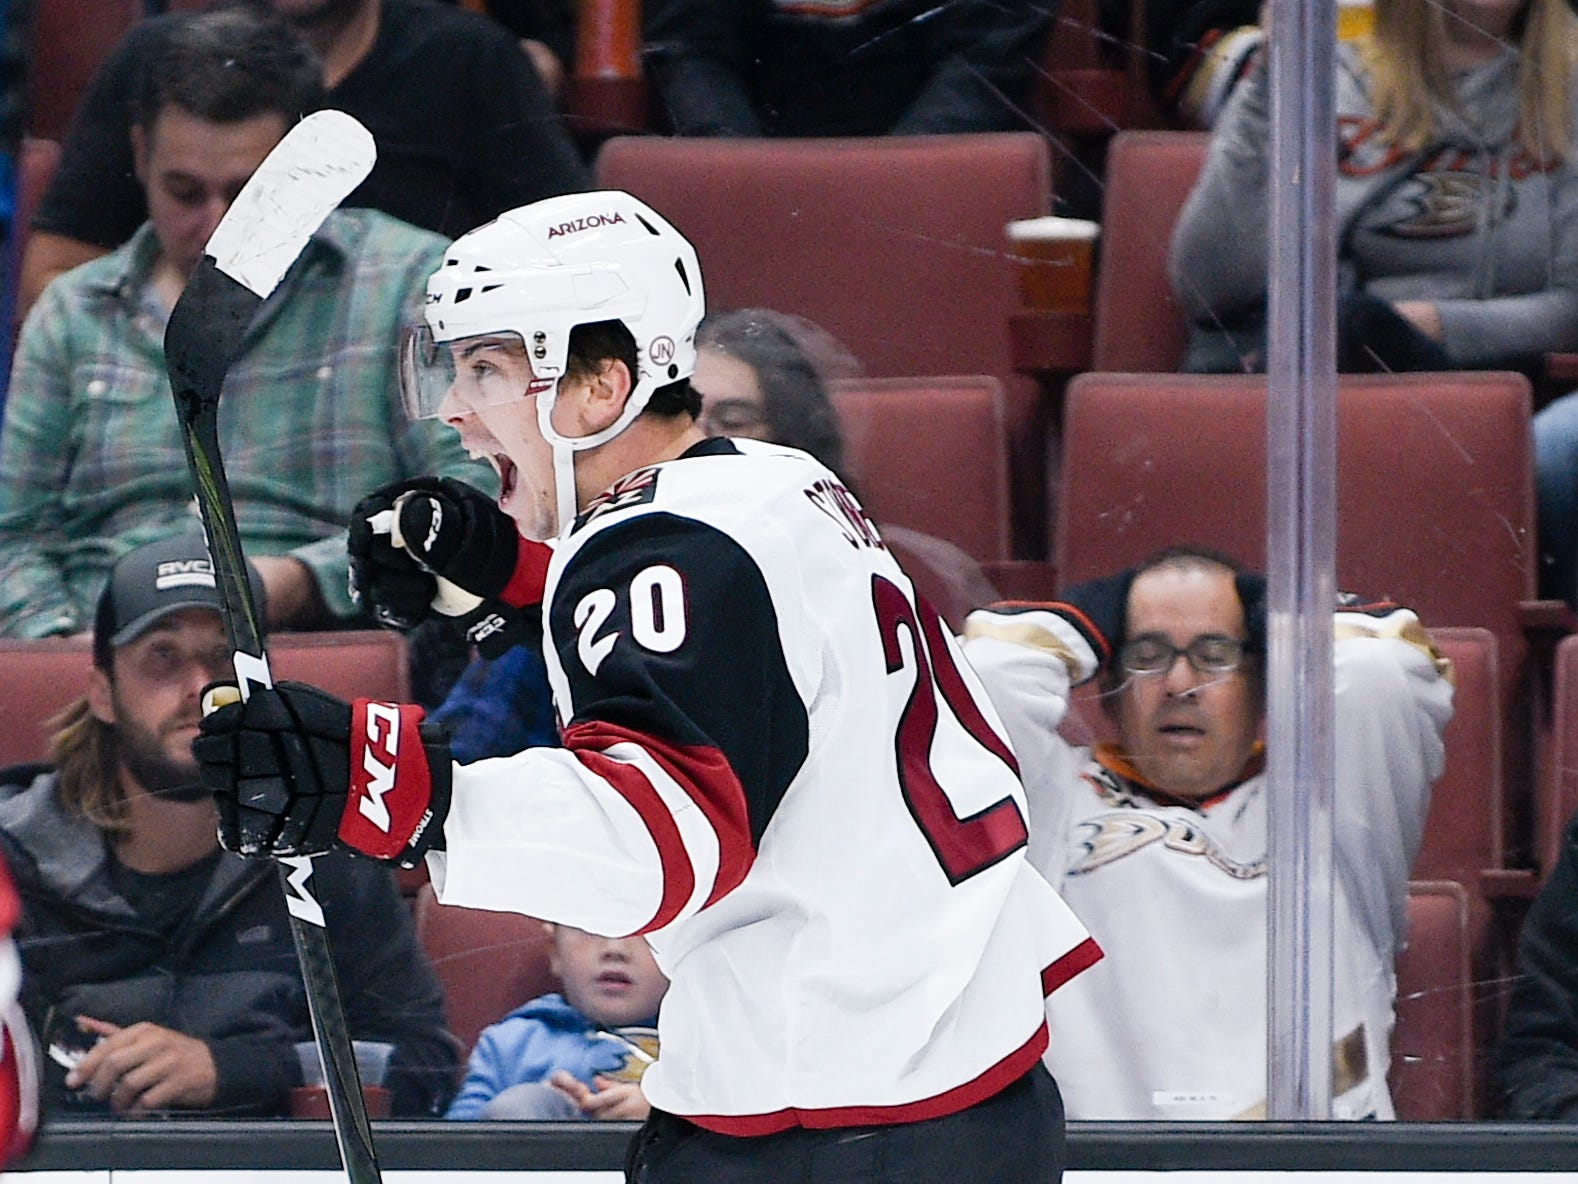 Oct 10, 2018; Anaheim, CA, USA; Arizona Coyotes center Dylan Strome (20) reacts after scoring a goal against the Anaheim Ducks during the first period at Honda Center.